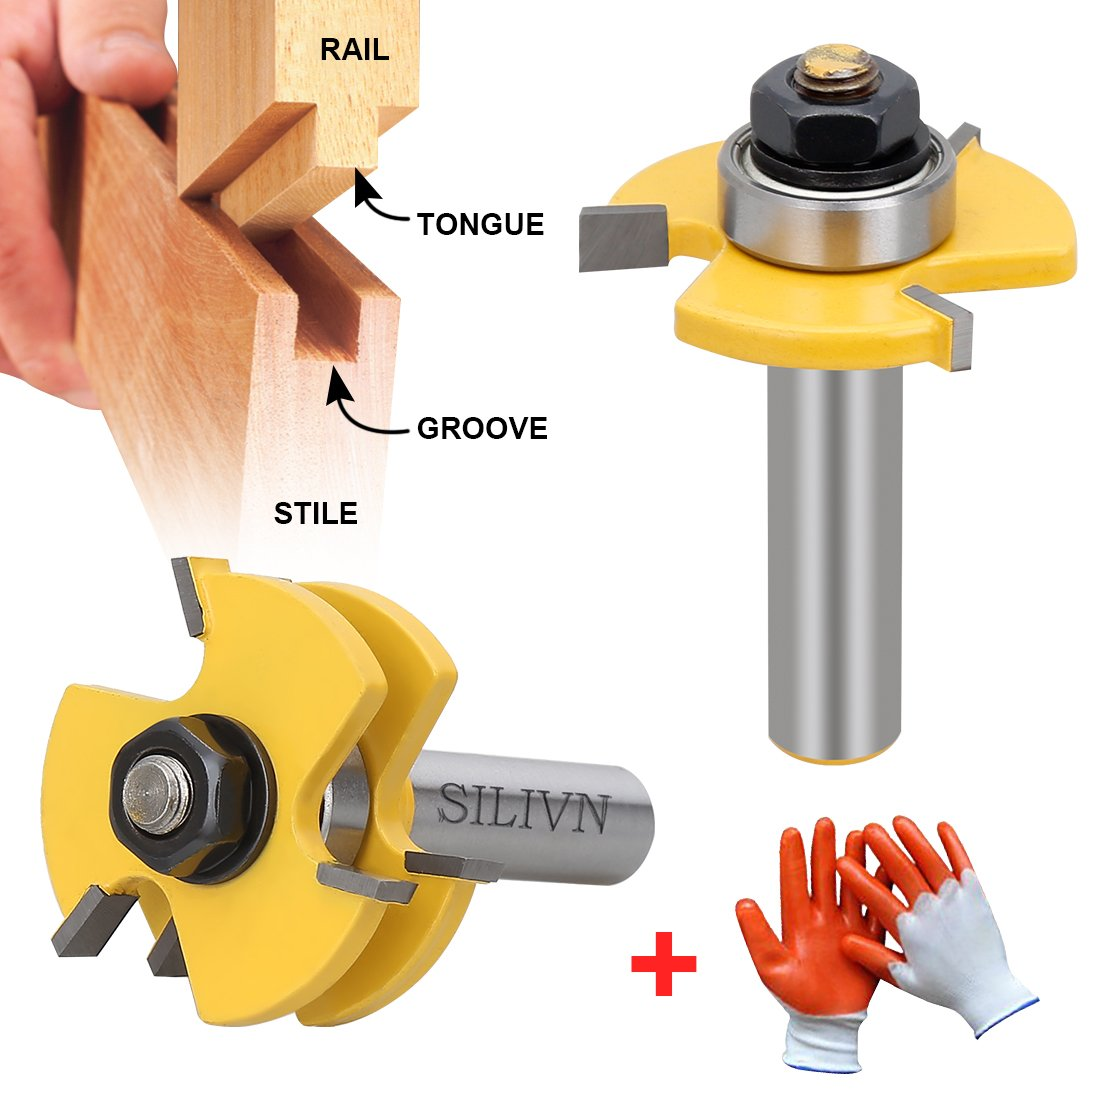 SILIVN Tongue and Groove Set, Router Bit Set, Wood Door Flooring 3 Teeth Adjustable, 1/2 Inch Shank T Shape Wood Milling Cutter Woodworking Tool, 2 Piece by SILIVN (Image #1)